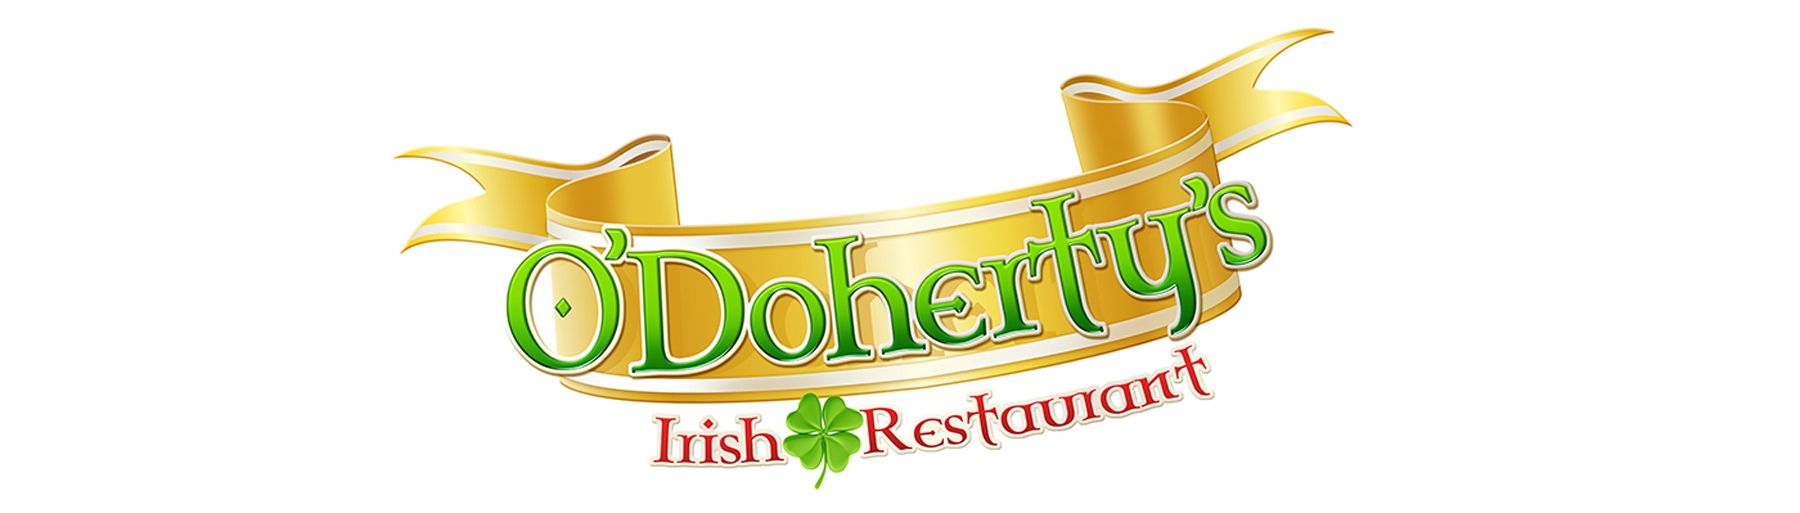 West Group Odohertys Irish Restaurant Logo on white background isolated